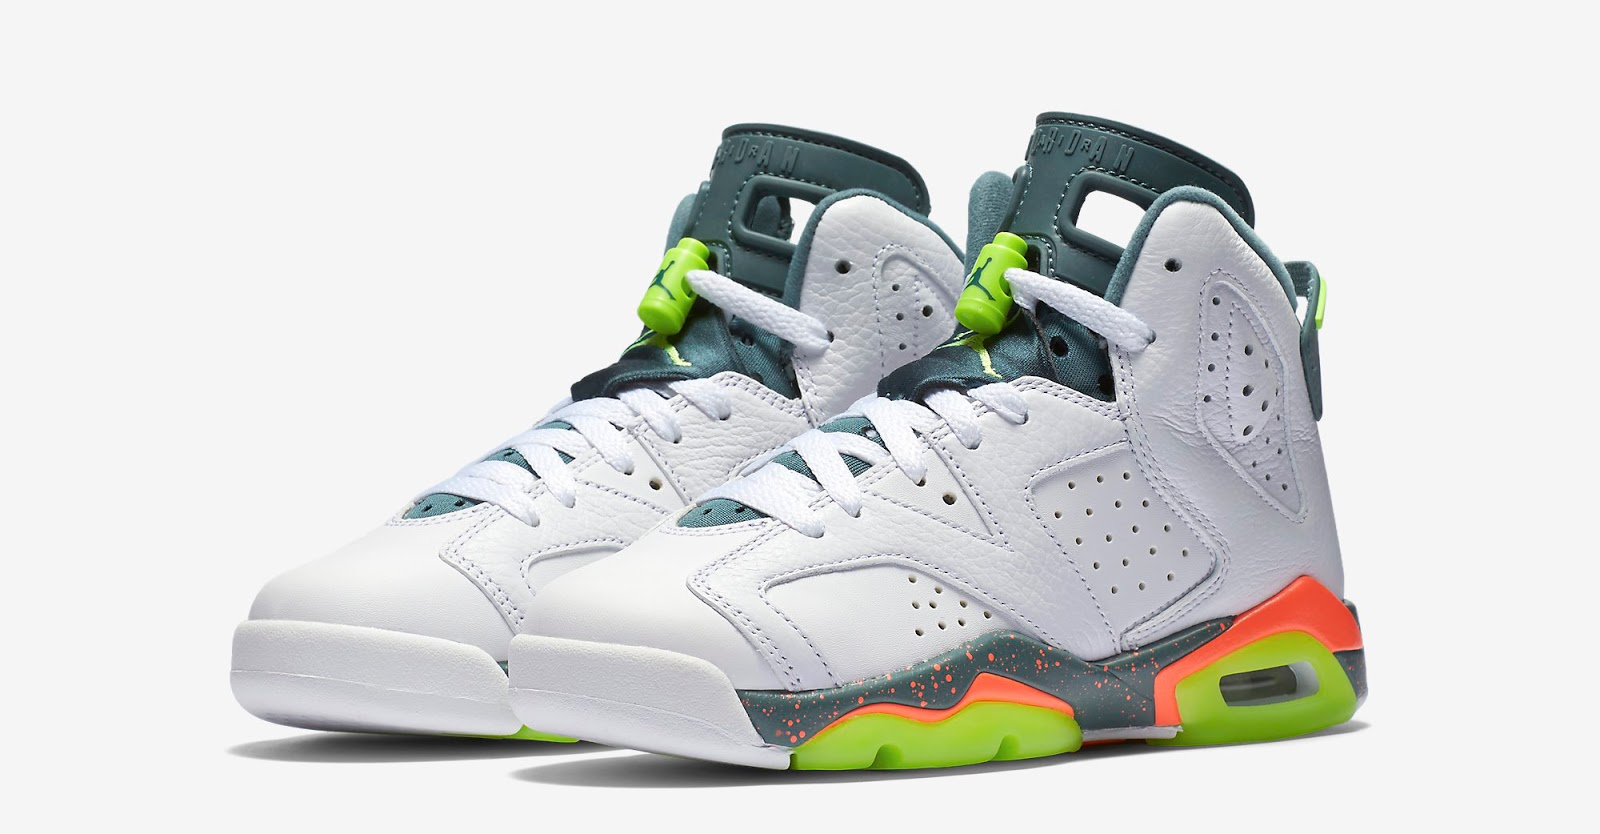 10349c7a3e98b0 ajordanxi Your  1 Source For Sneaker Release Dates  Air Jordan 6 Retro GS  White Ghost Green-Bright Mango-Hasta Release Reminder